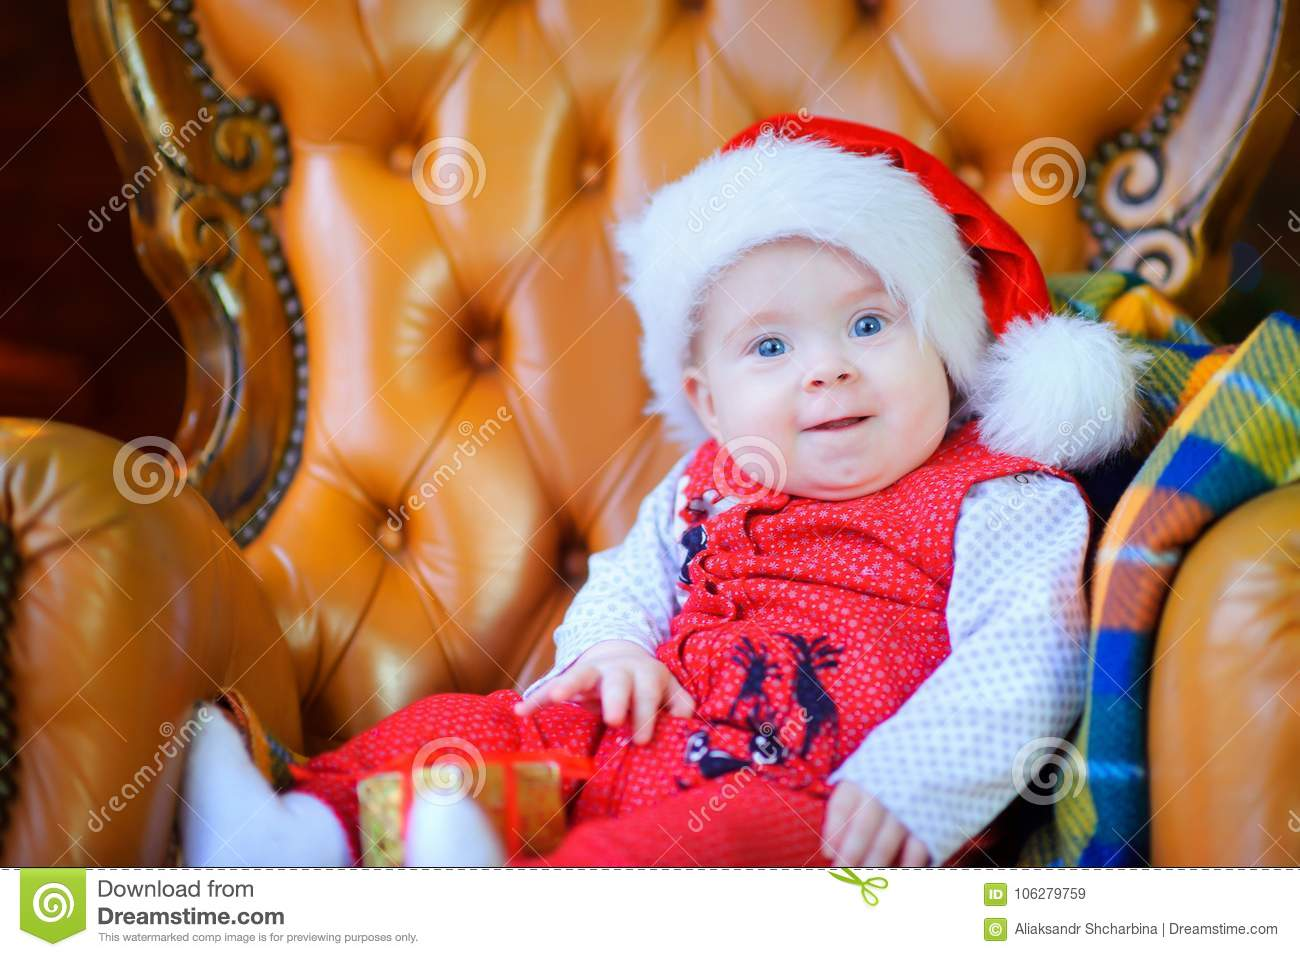 d199bc584a0 Beautiful toddler in santa claus cap sits on chair smiling and looks at  camera